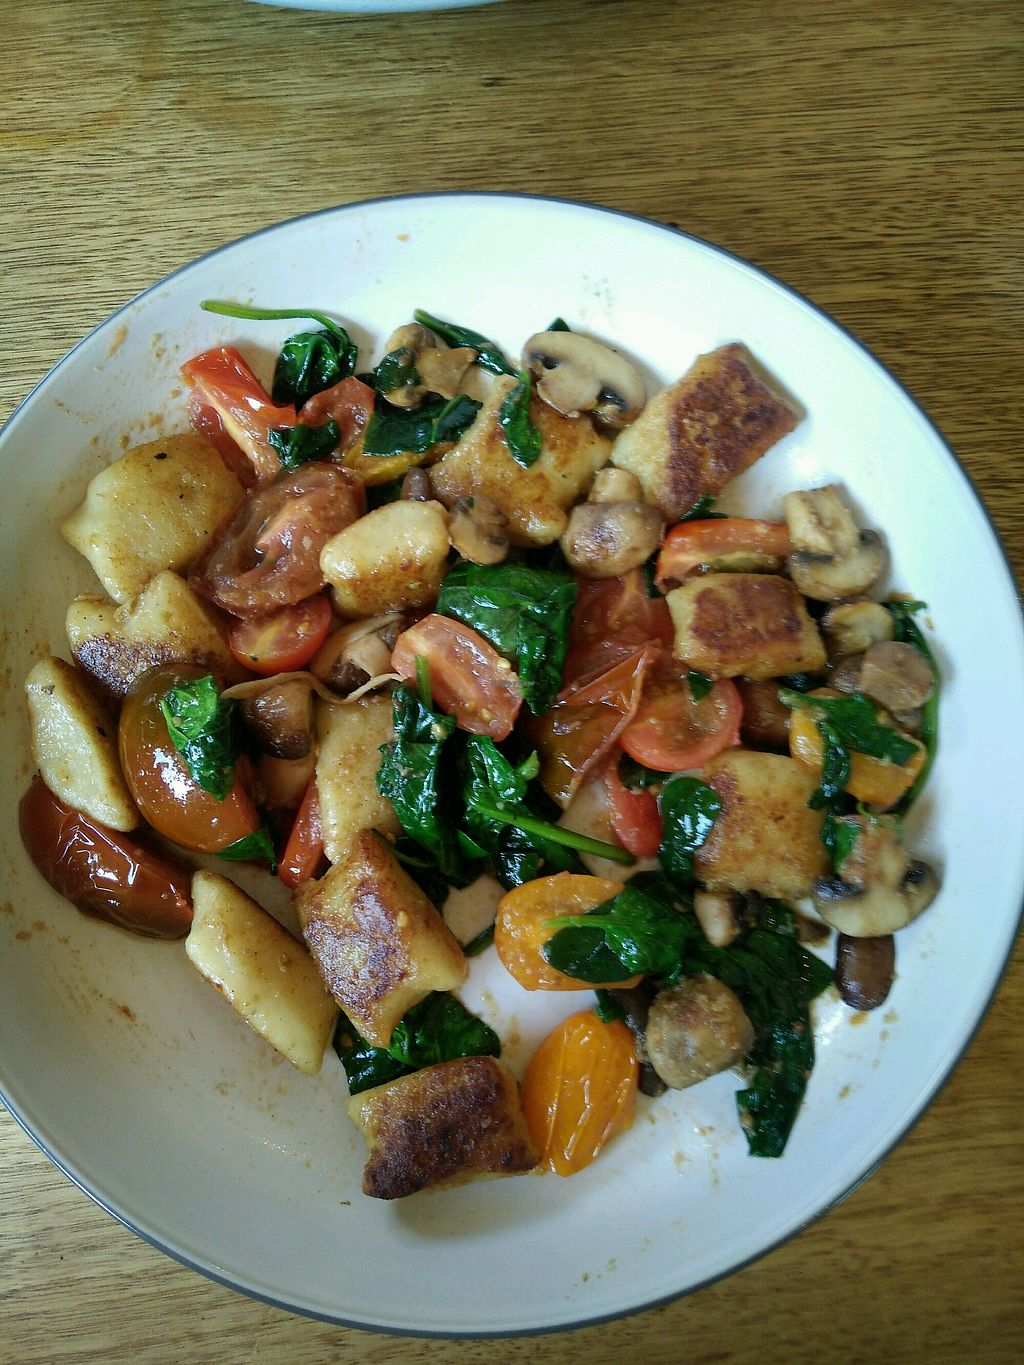 "Photo of Nanna Kerr's Kitchen  by <a href=""/members/profile/JenniferJ"">JenniferJ</a> <br/>Vegan gnocchi <br/> April 25, 2018  - <a href='/contact/abuse/image/70228/390777'>Report</a>"